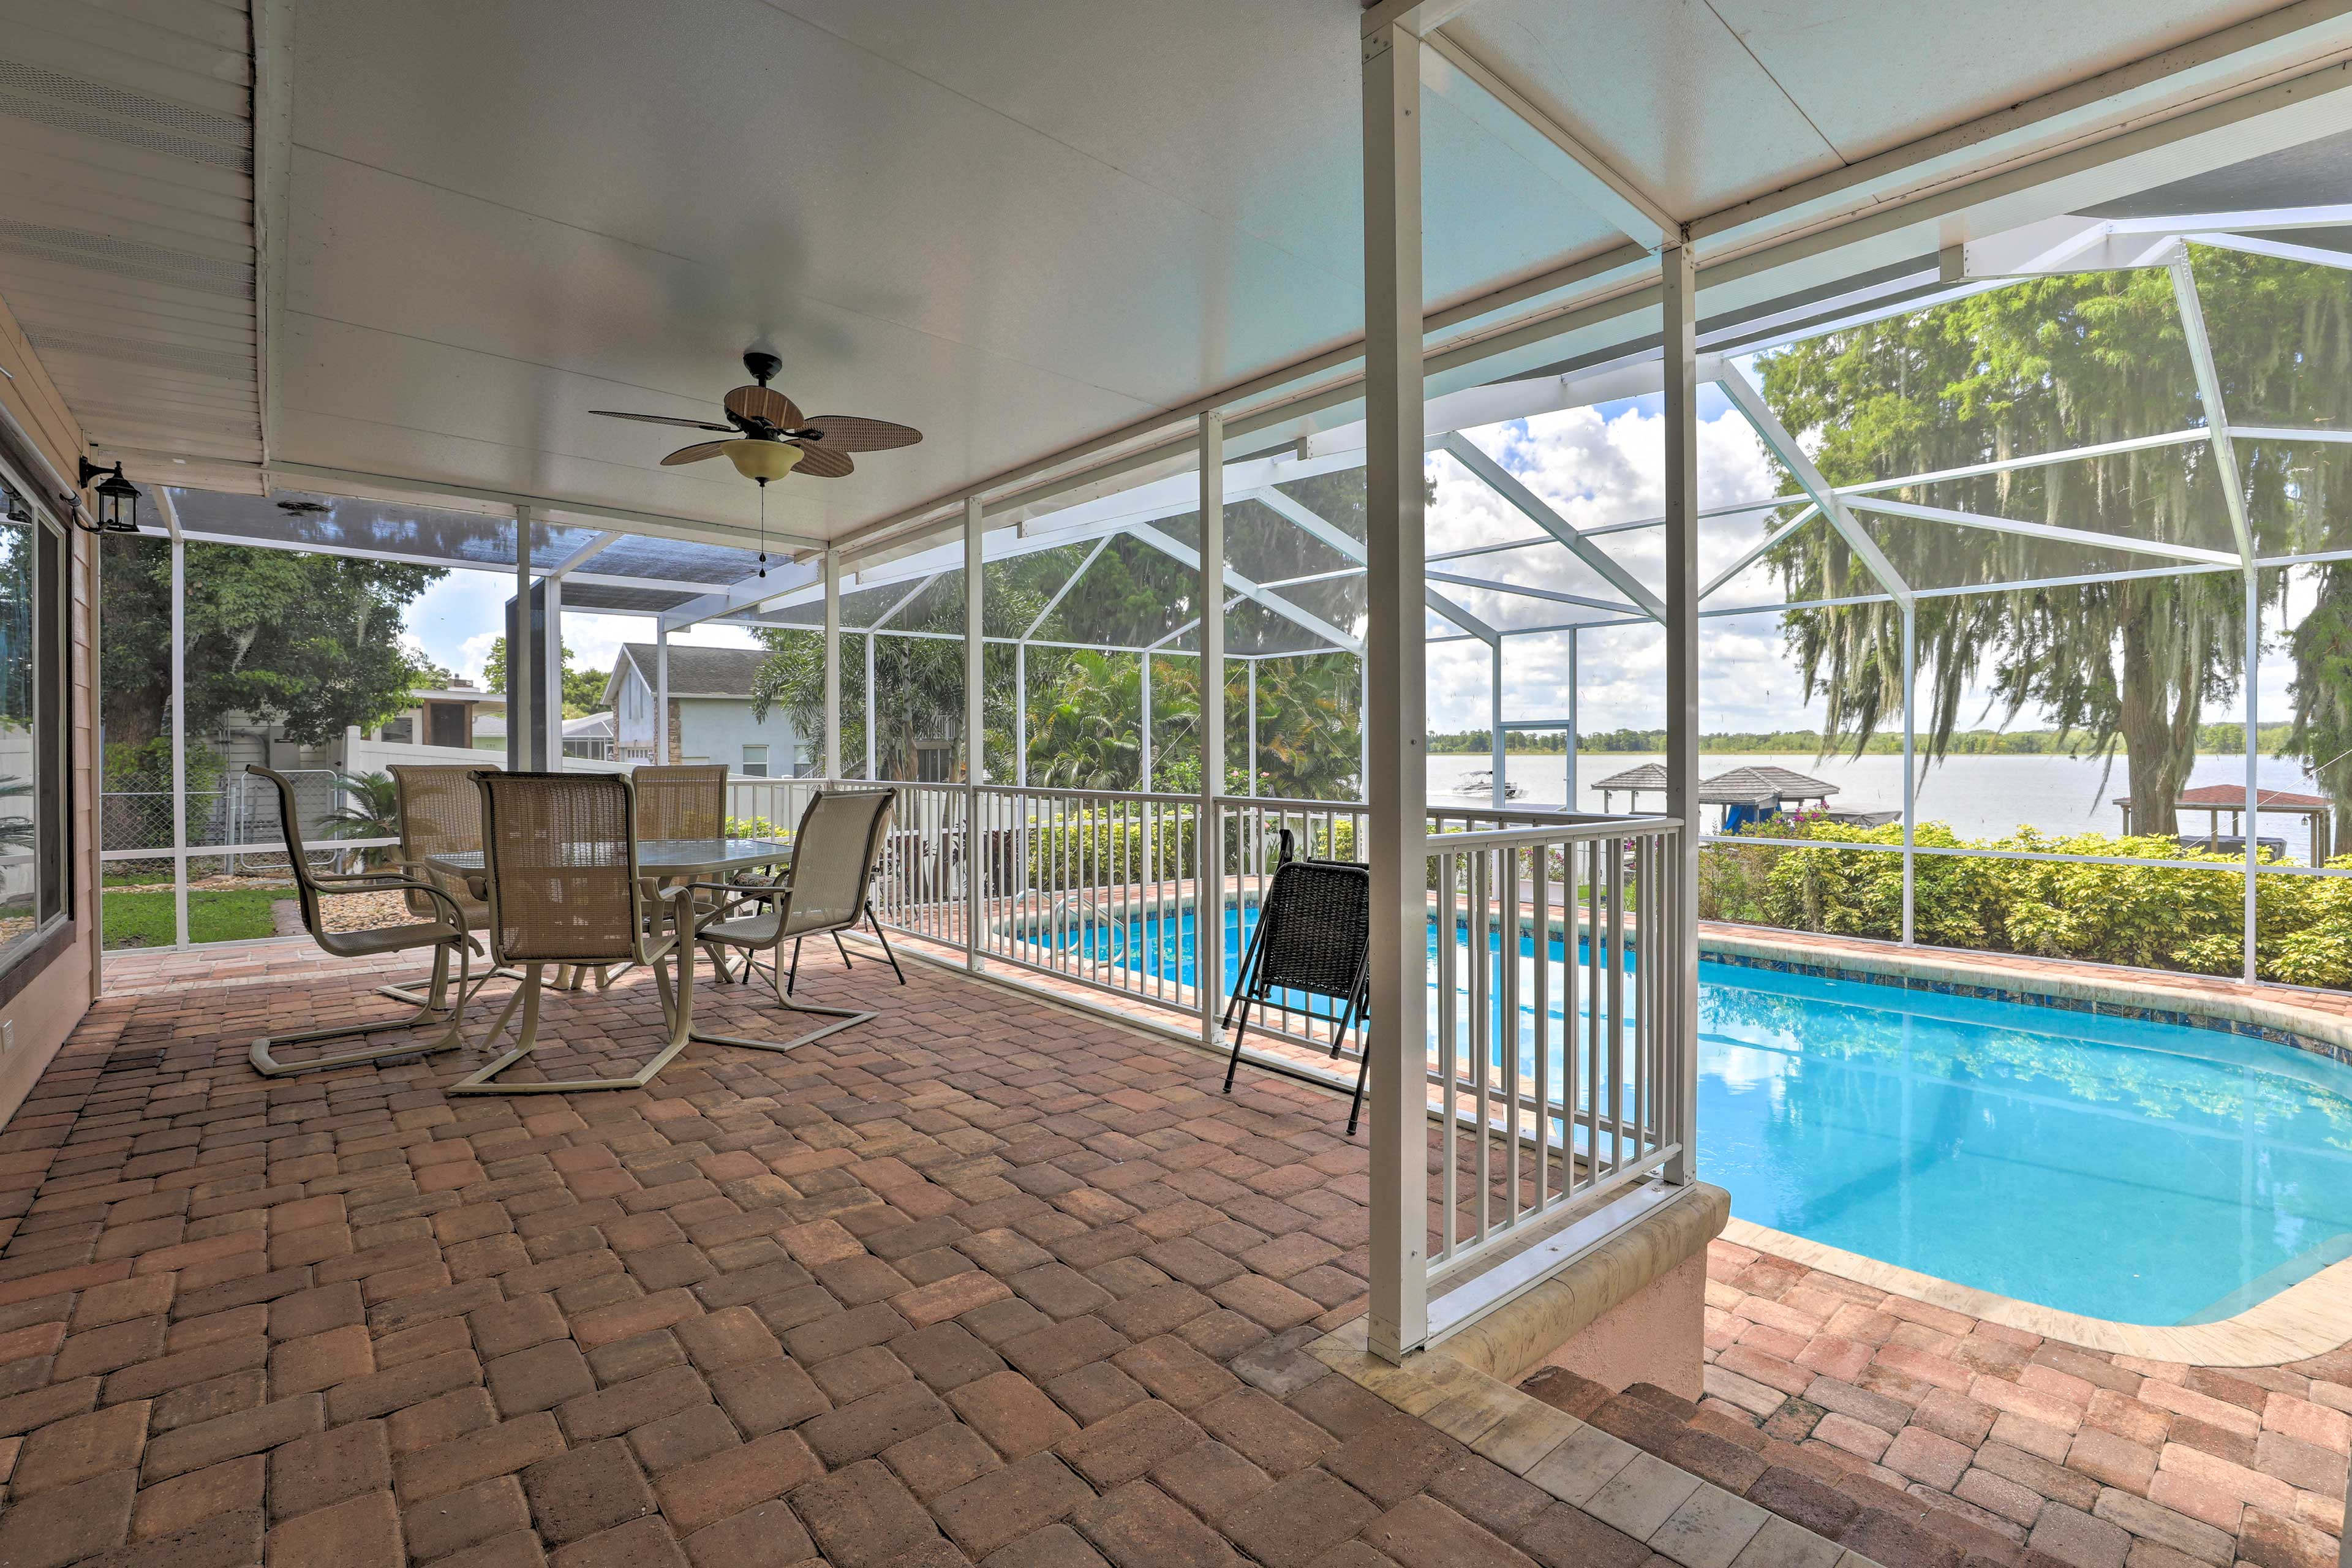 Step onto the screened-in porch to dine al fresco.